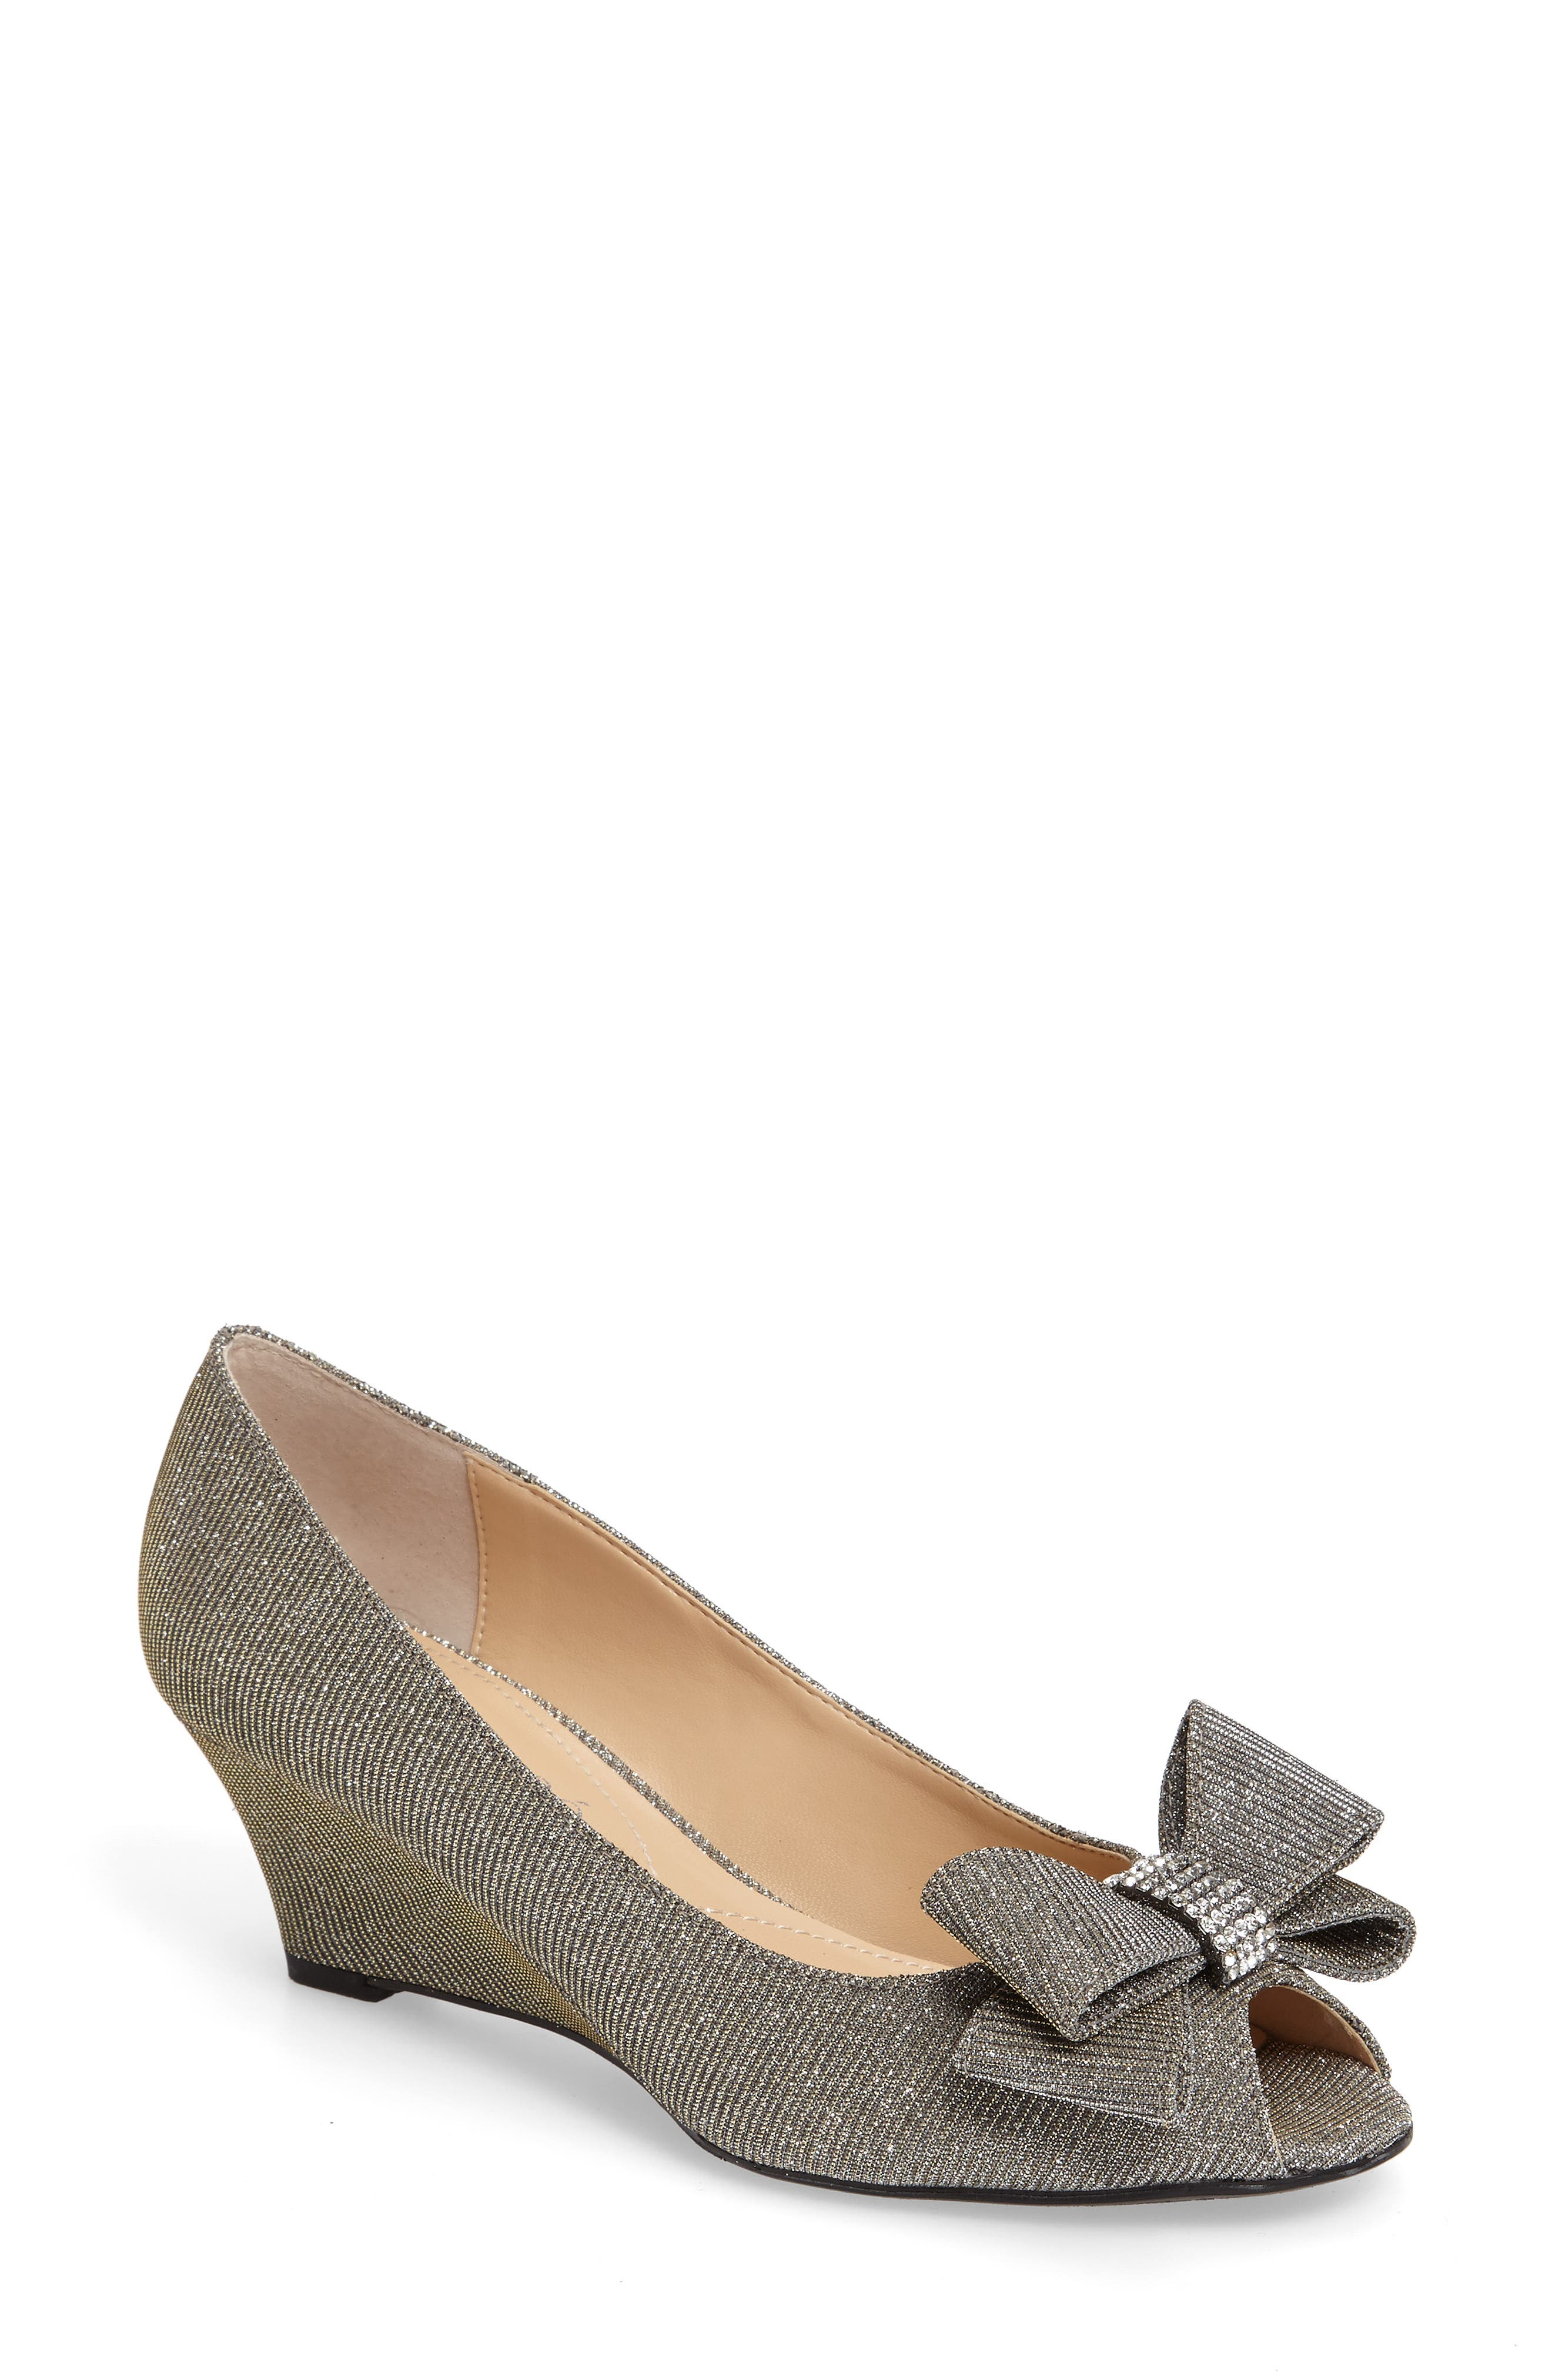 Alternate Image 1 Selected - J. Reneé 'Blare' Bow Wedge Peep Toe Pump (Women)